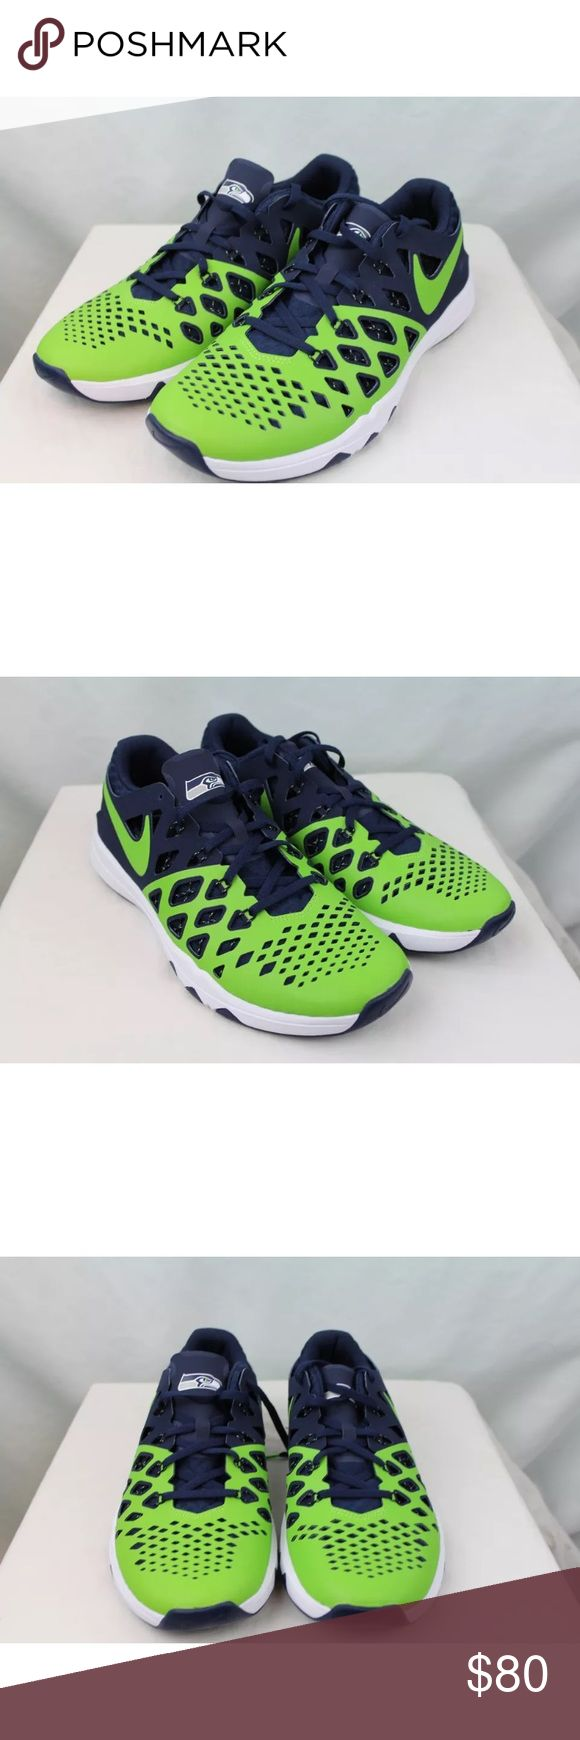 NWOT Nike Train Speed Seattle Seahawks NFL Sneaker NEW Nike Train Speed 4 AMP NFL Seattle Seahawks Green Blue Size 10 US Mens   Ultimate Seahawks fan gear!    New without box Nike Seattle Seahawks mens shoes. Blue and green Seahawks colors, size 10 in US mens. Nike Shoes Athletic Shoes